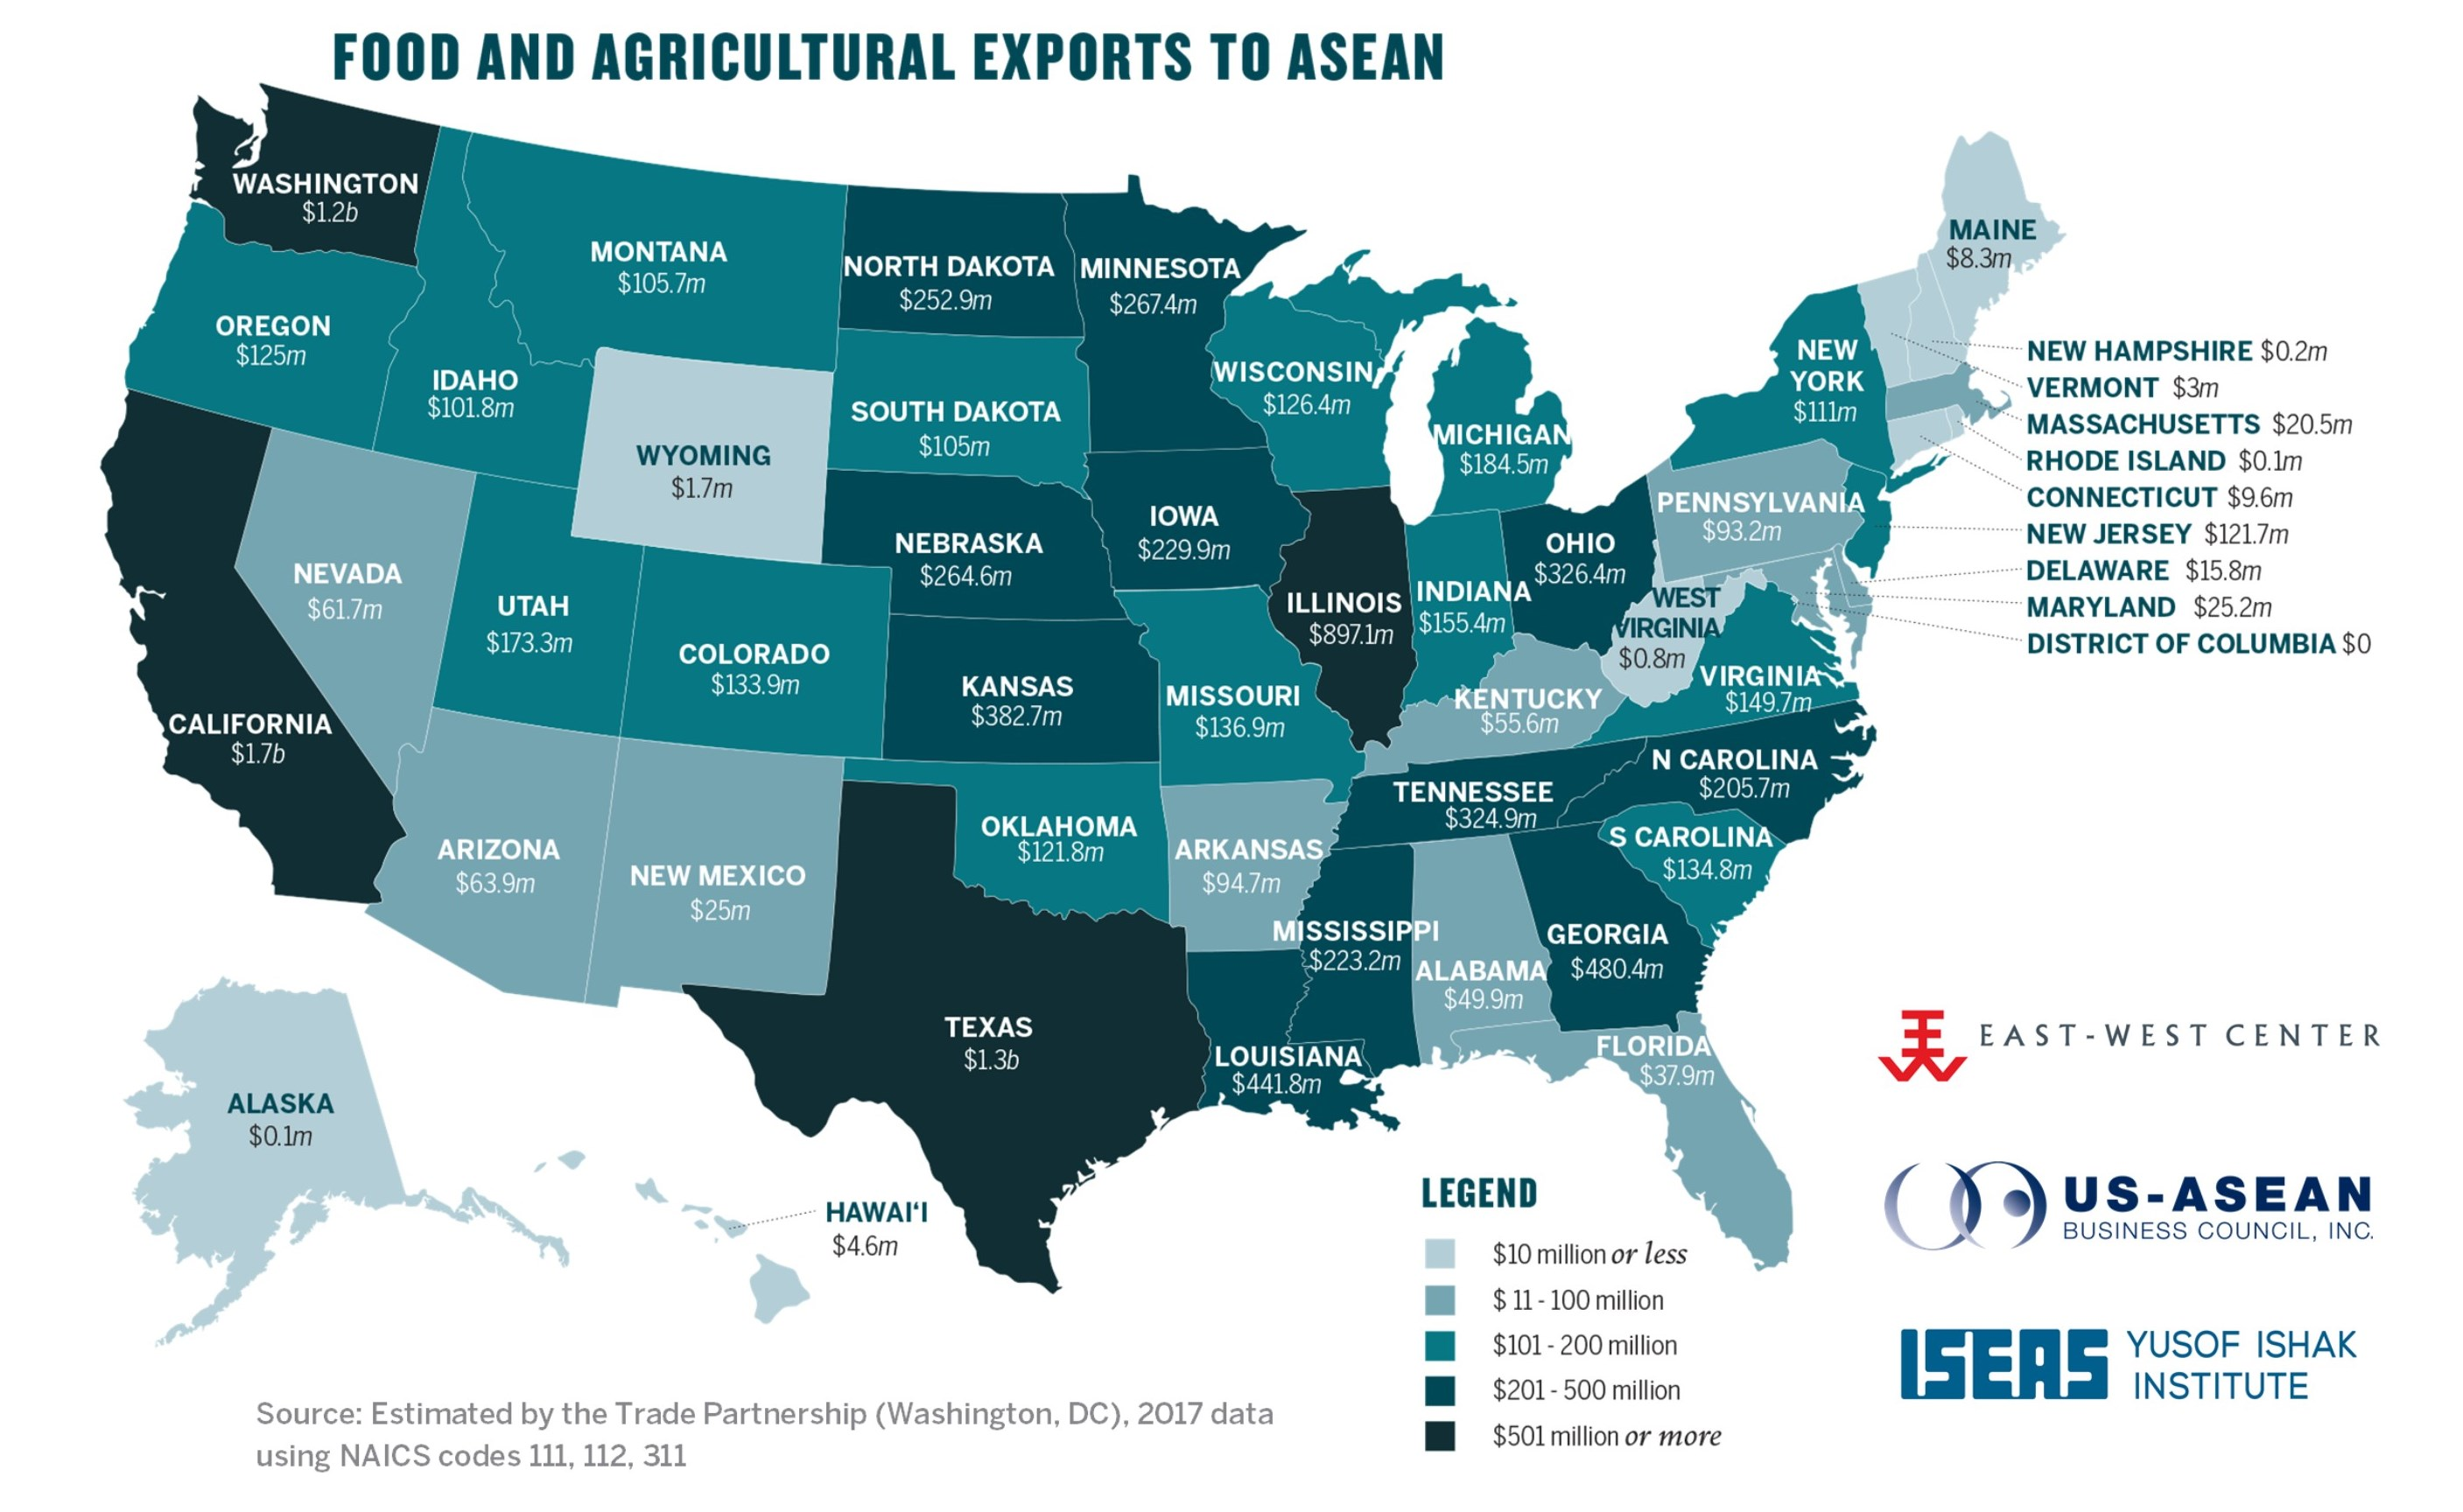 Good and Agriculture Exports to ASEAN